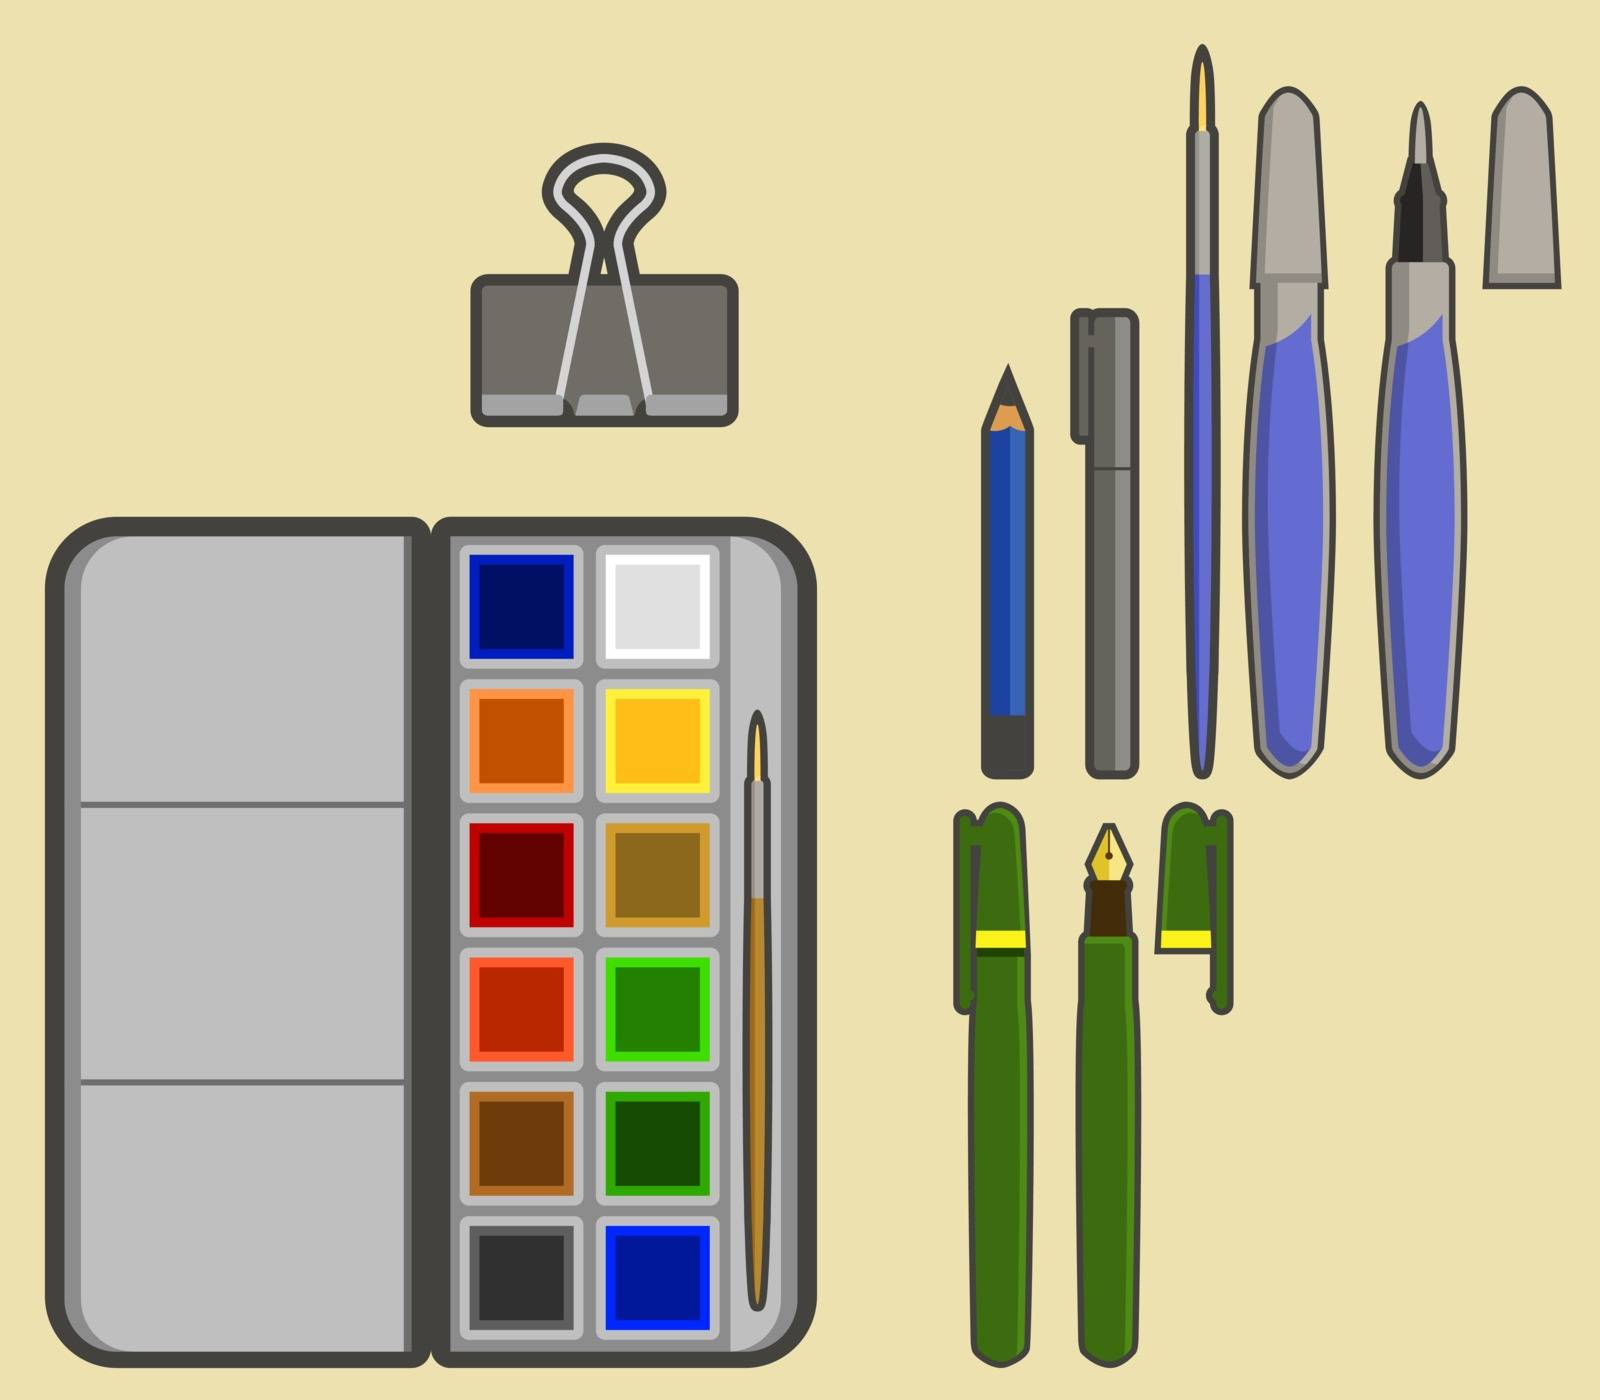 Contain drawing tool simple icon, such as pencil, pen, brush, sketchbook and watercolor